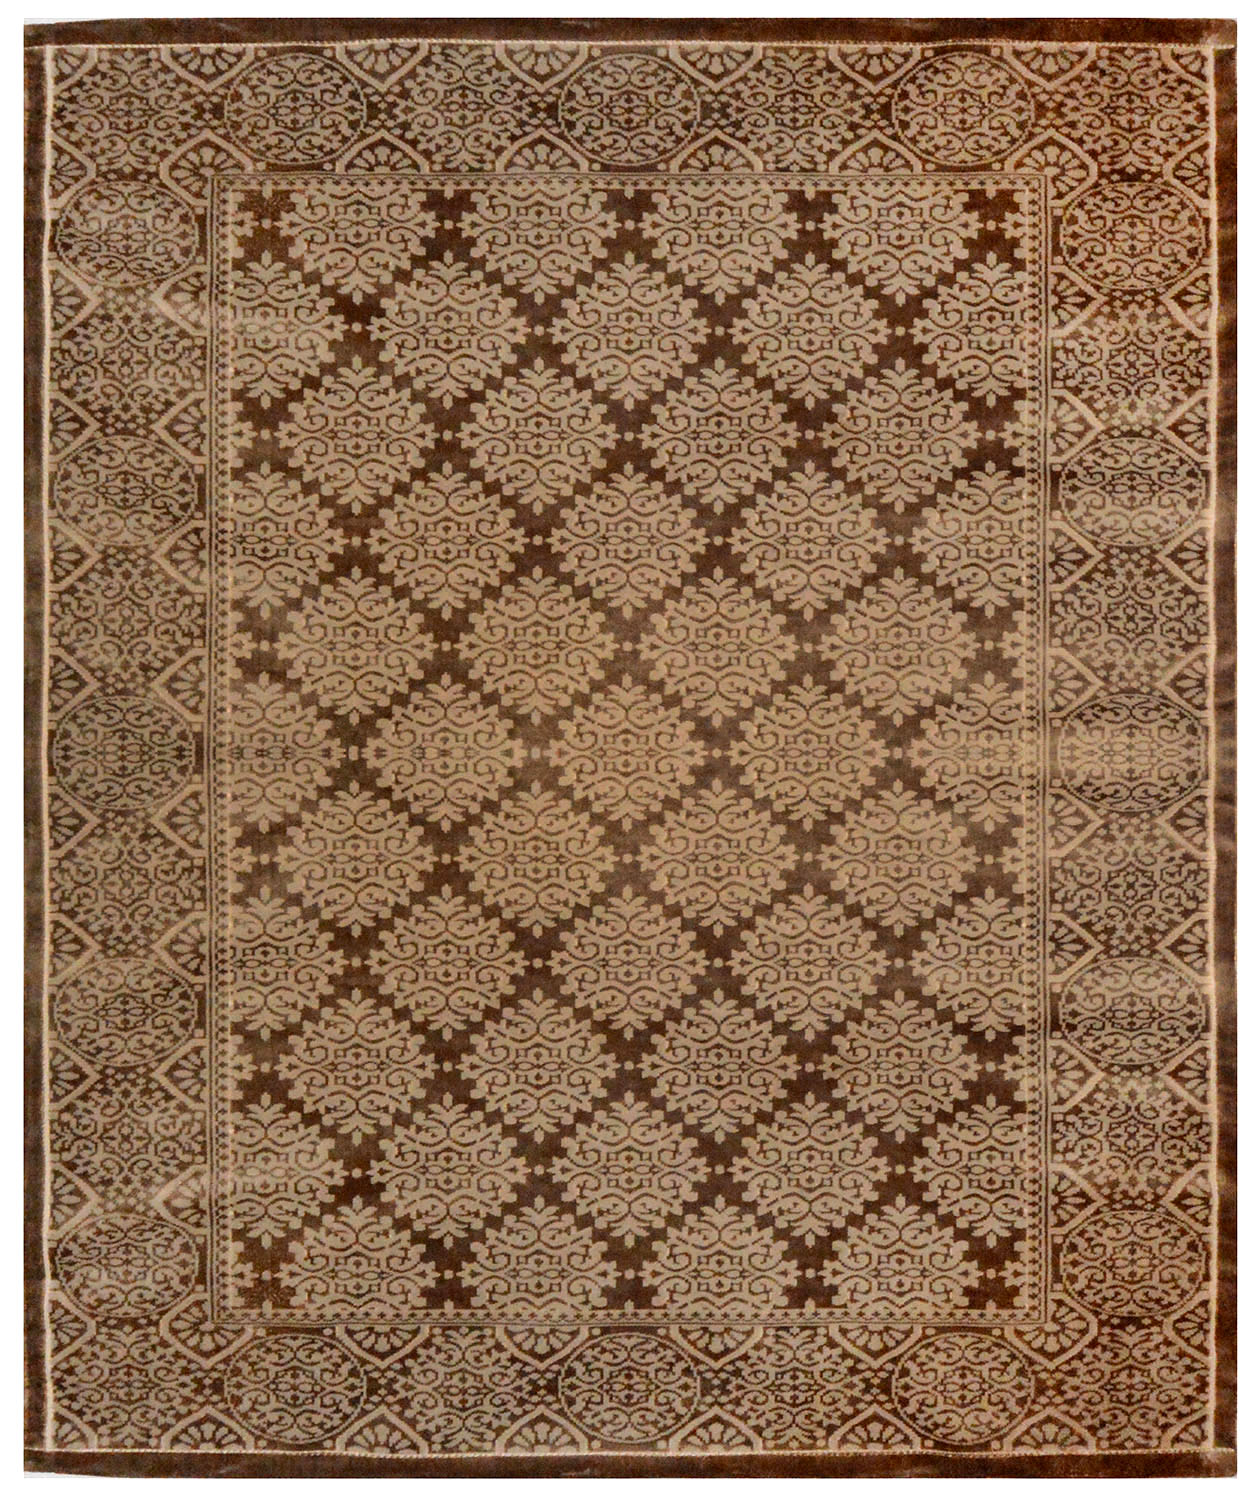 Well Placed Rugs And Factors About Difference In Prices